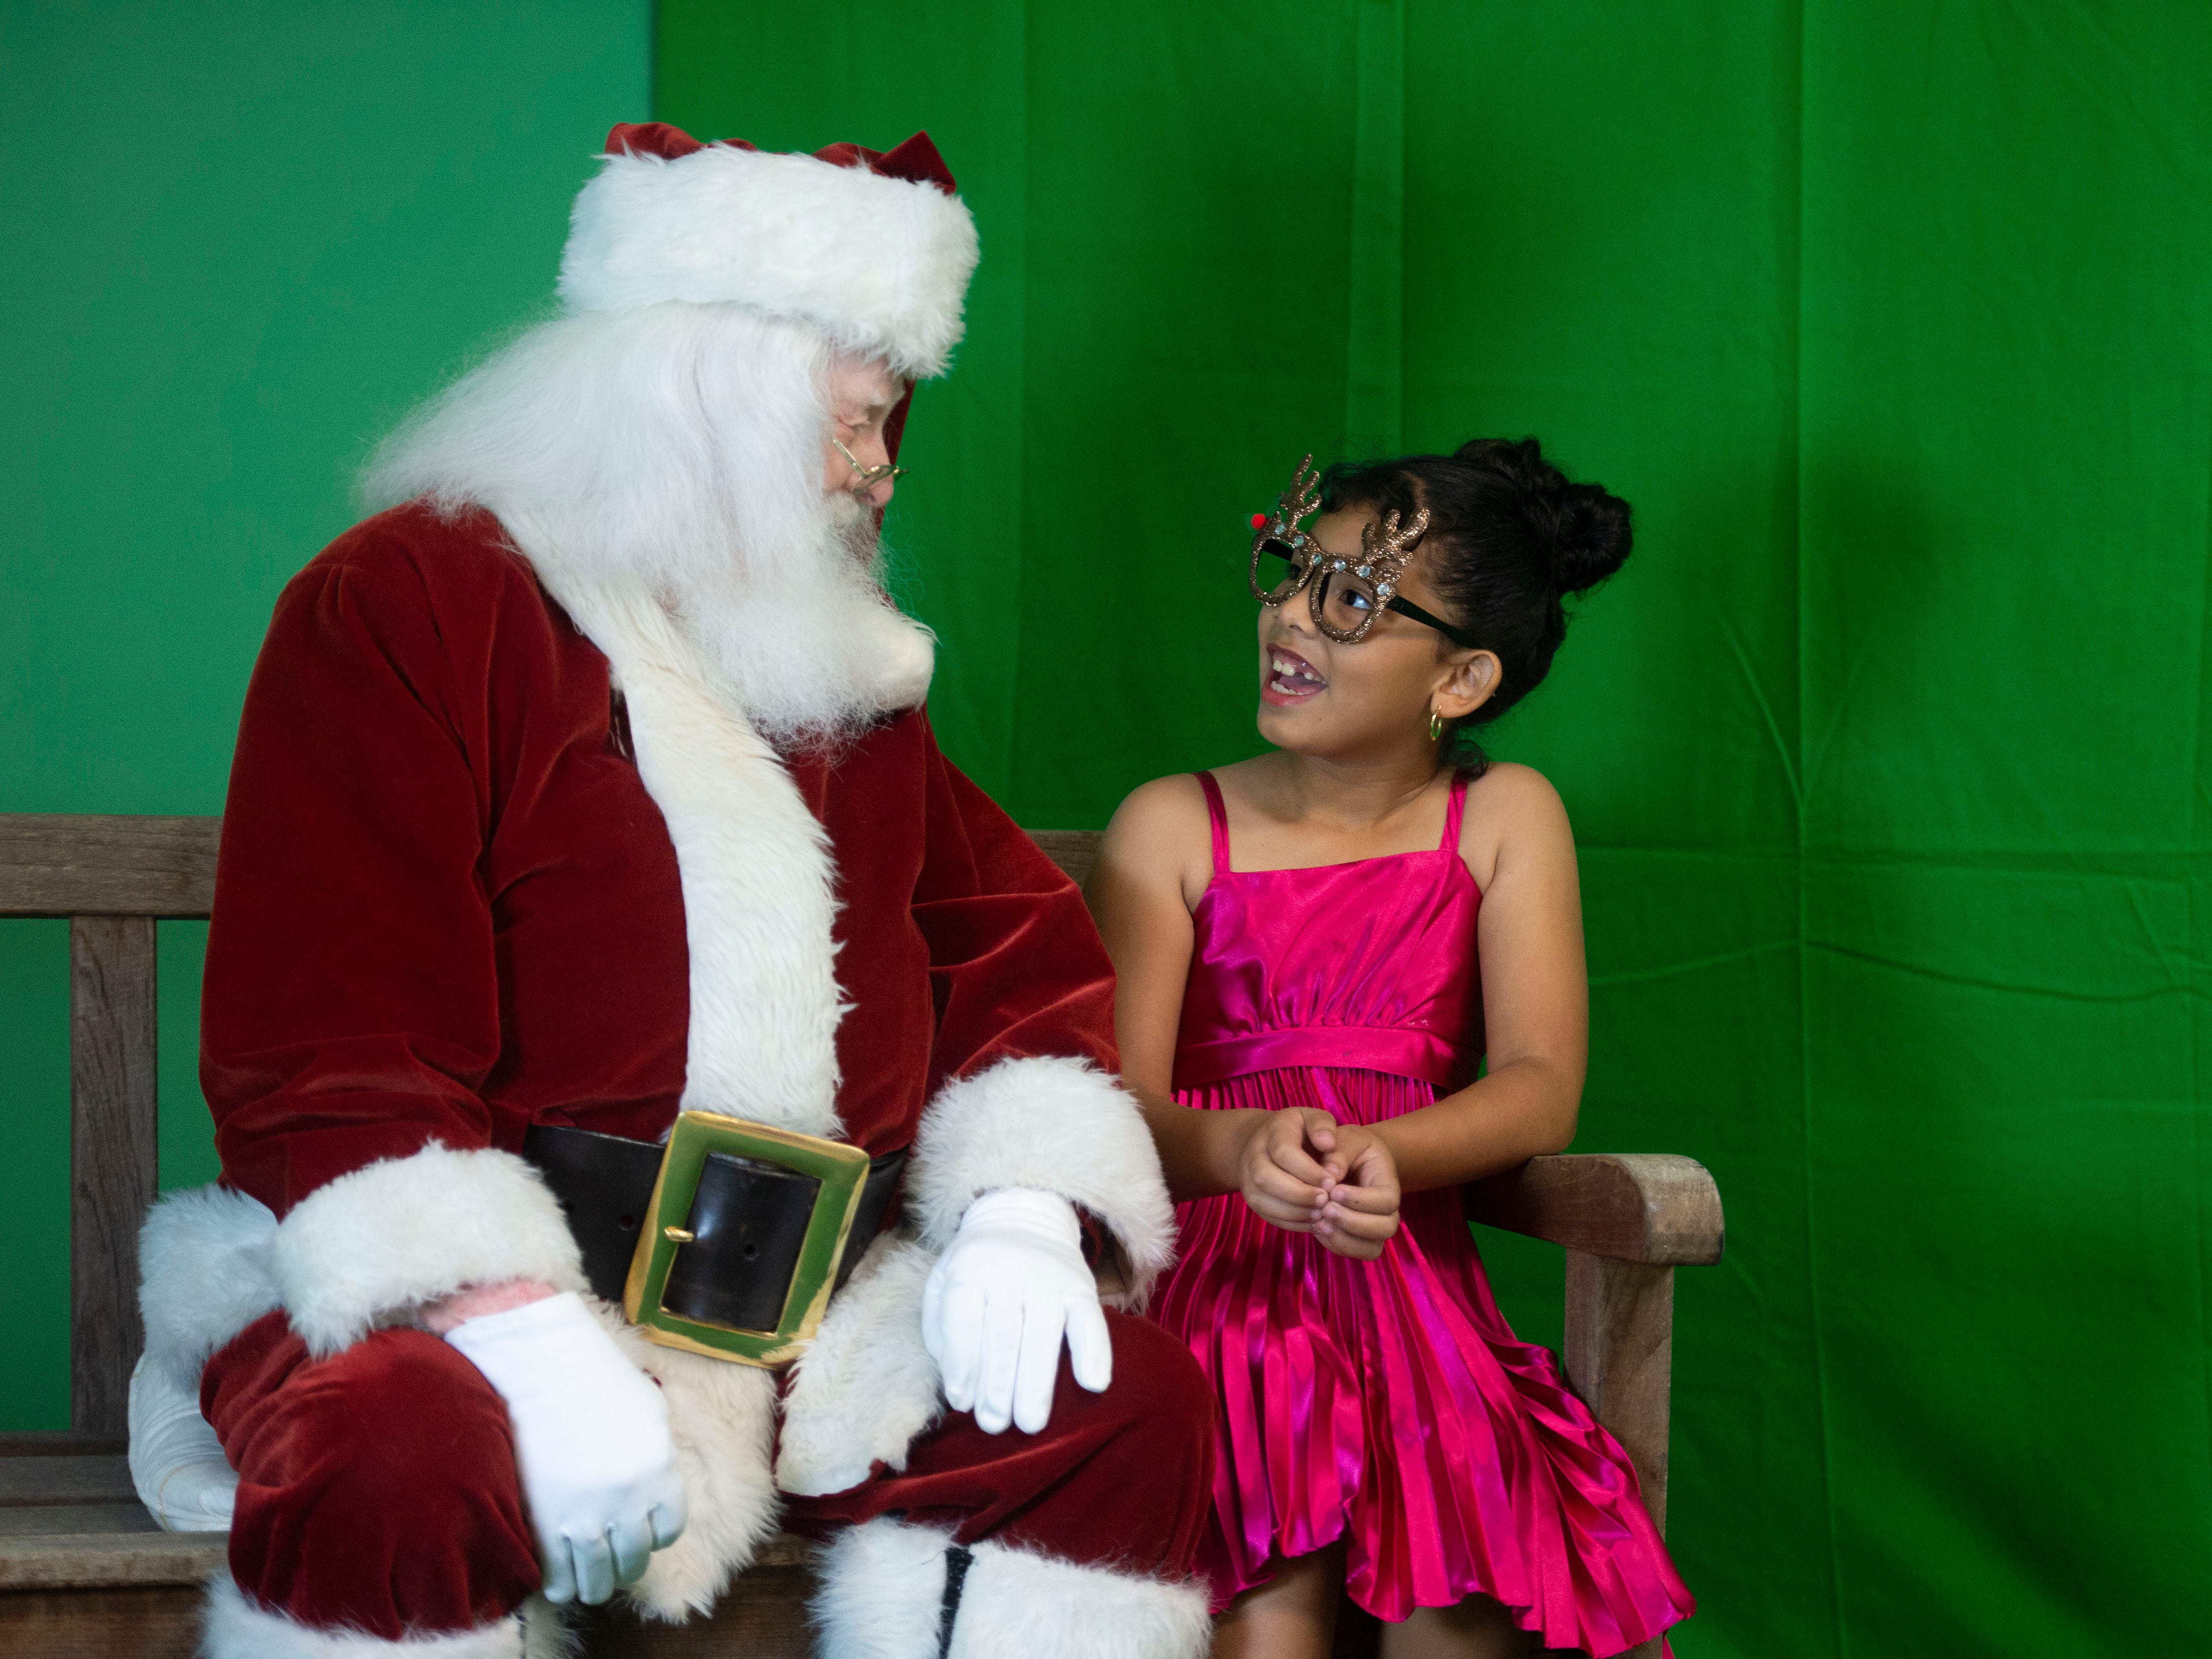 "Veronica Colon, 8, of Vero Beach, shares a moment with Lance Willock, dressed as Santa Claus, during the Humane Society of Vero Beach and Indian River County's annual Santa Paws photo shoot Sunday, Nov. 4, 2018 at the Humane Society Thrift Store in Vero Beach. Willock is used to meeting children during the holiday season, but enjoys greeting the animals and helping out with the fundraiser. ""They're different than children but they all have personalities. Once they get acquainted with Santa it's interesting to see how they all react to Santa, almost like children somewhat,"" Willock said."